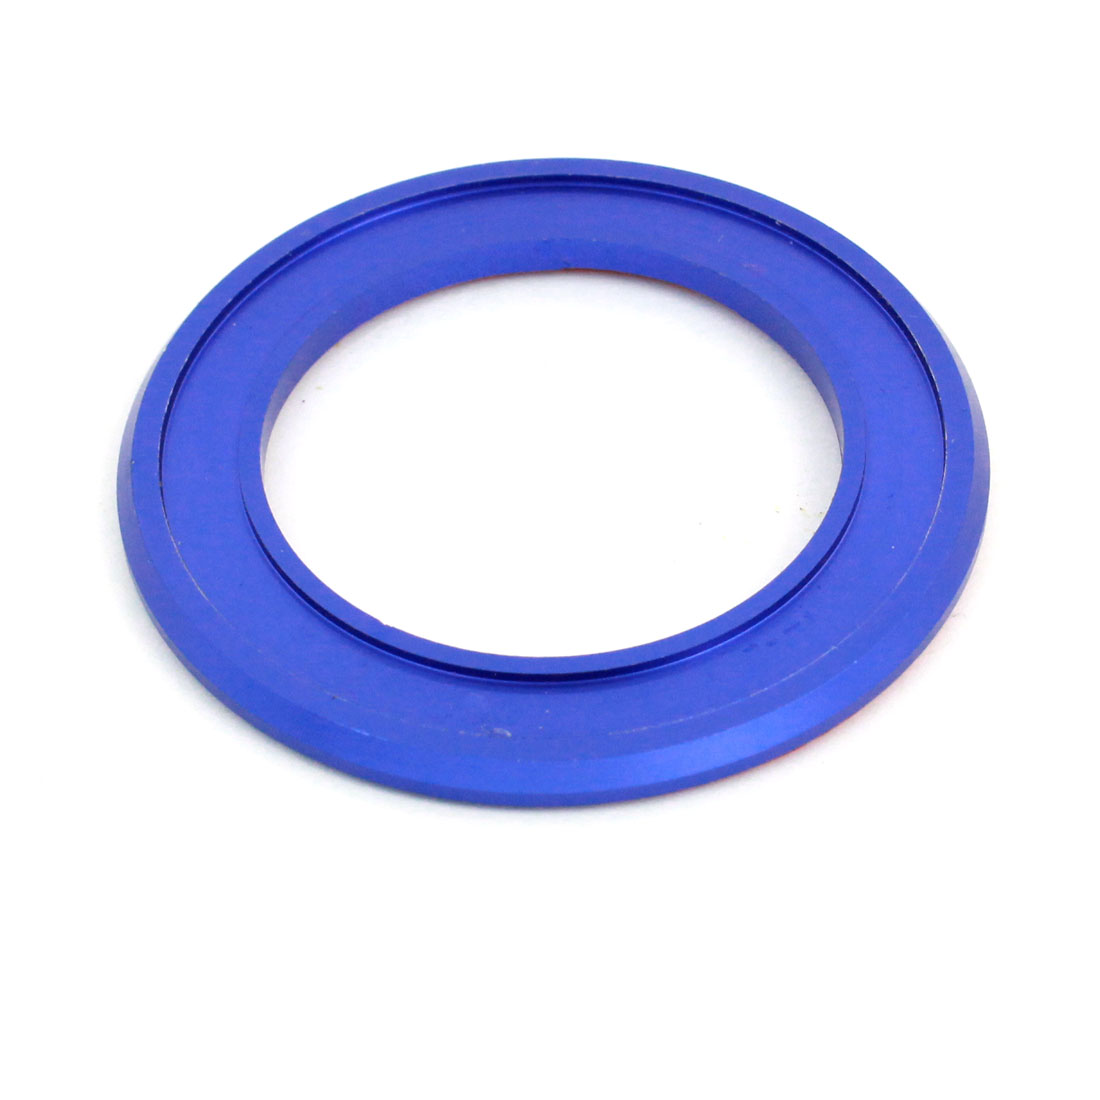 Car Blue 55mm Dia Aluminium Key Ring Reychain Protector for Nissan